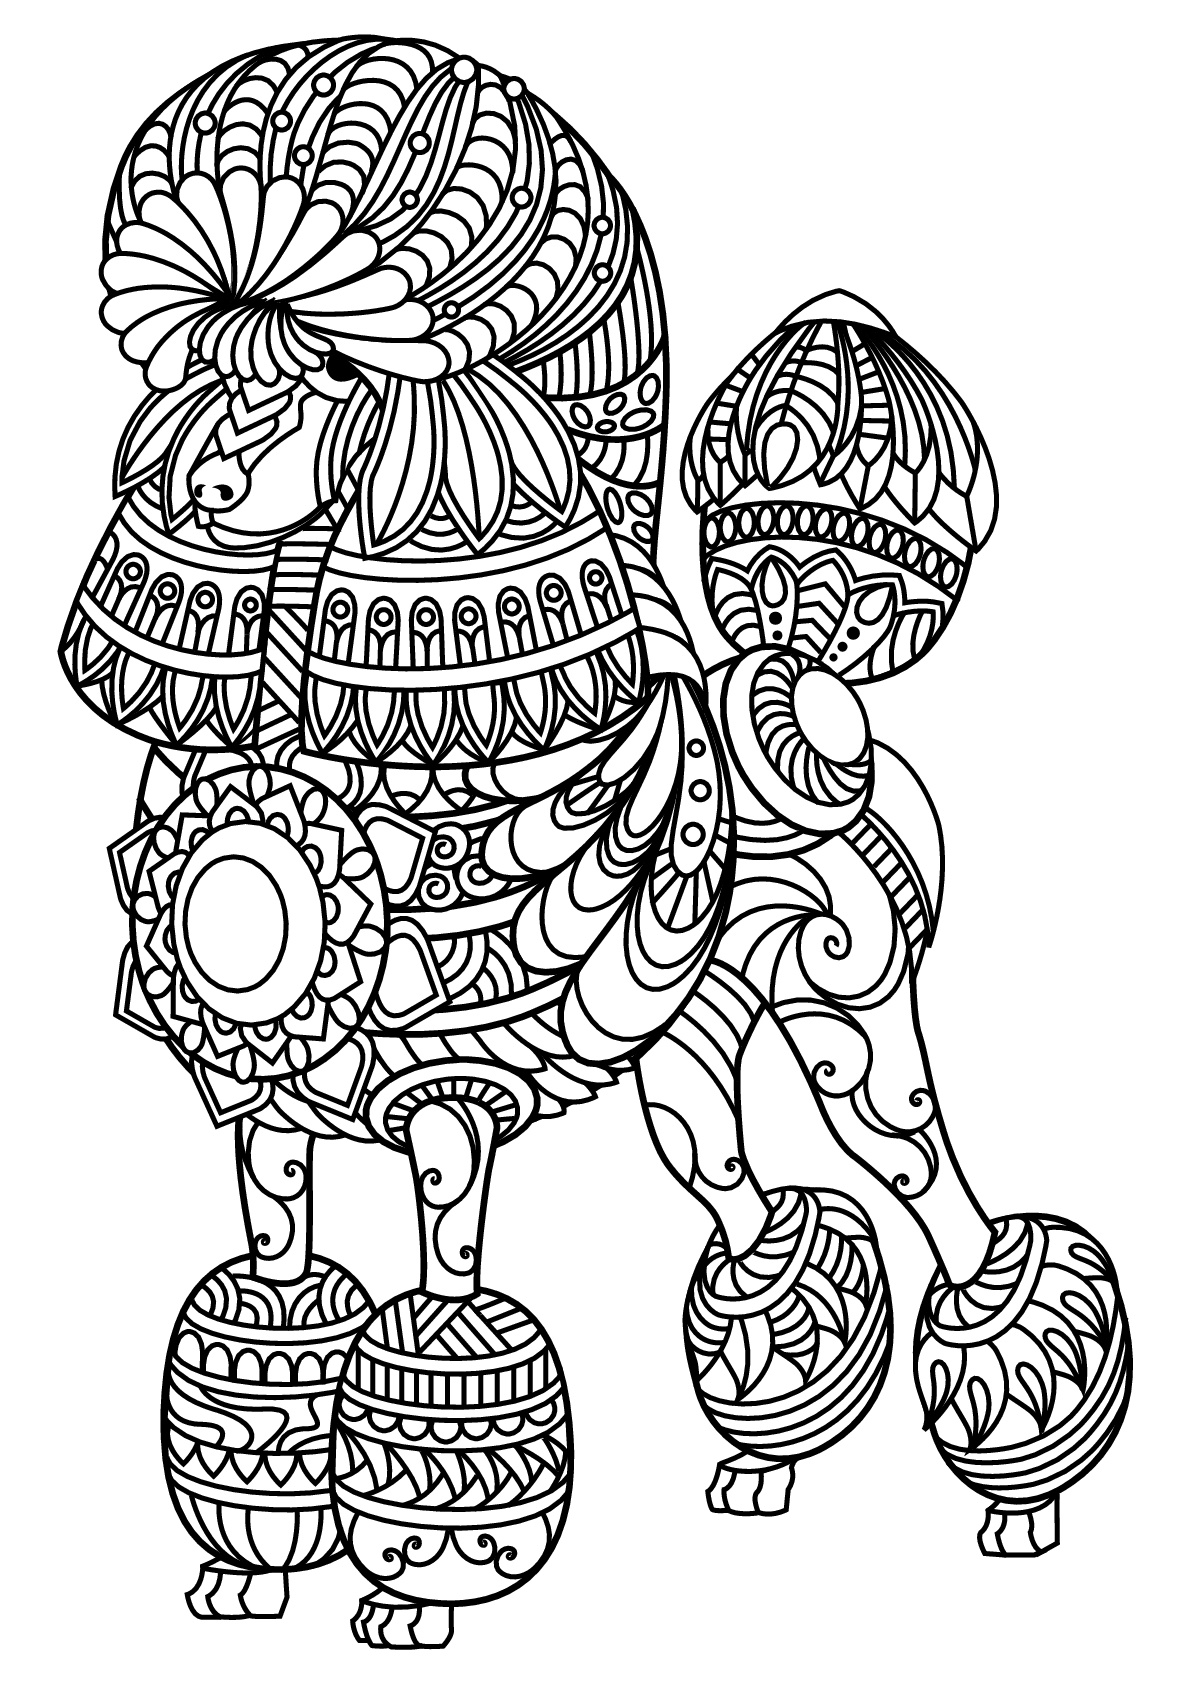 Dog coloring page to print and color